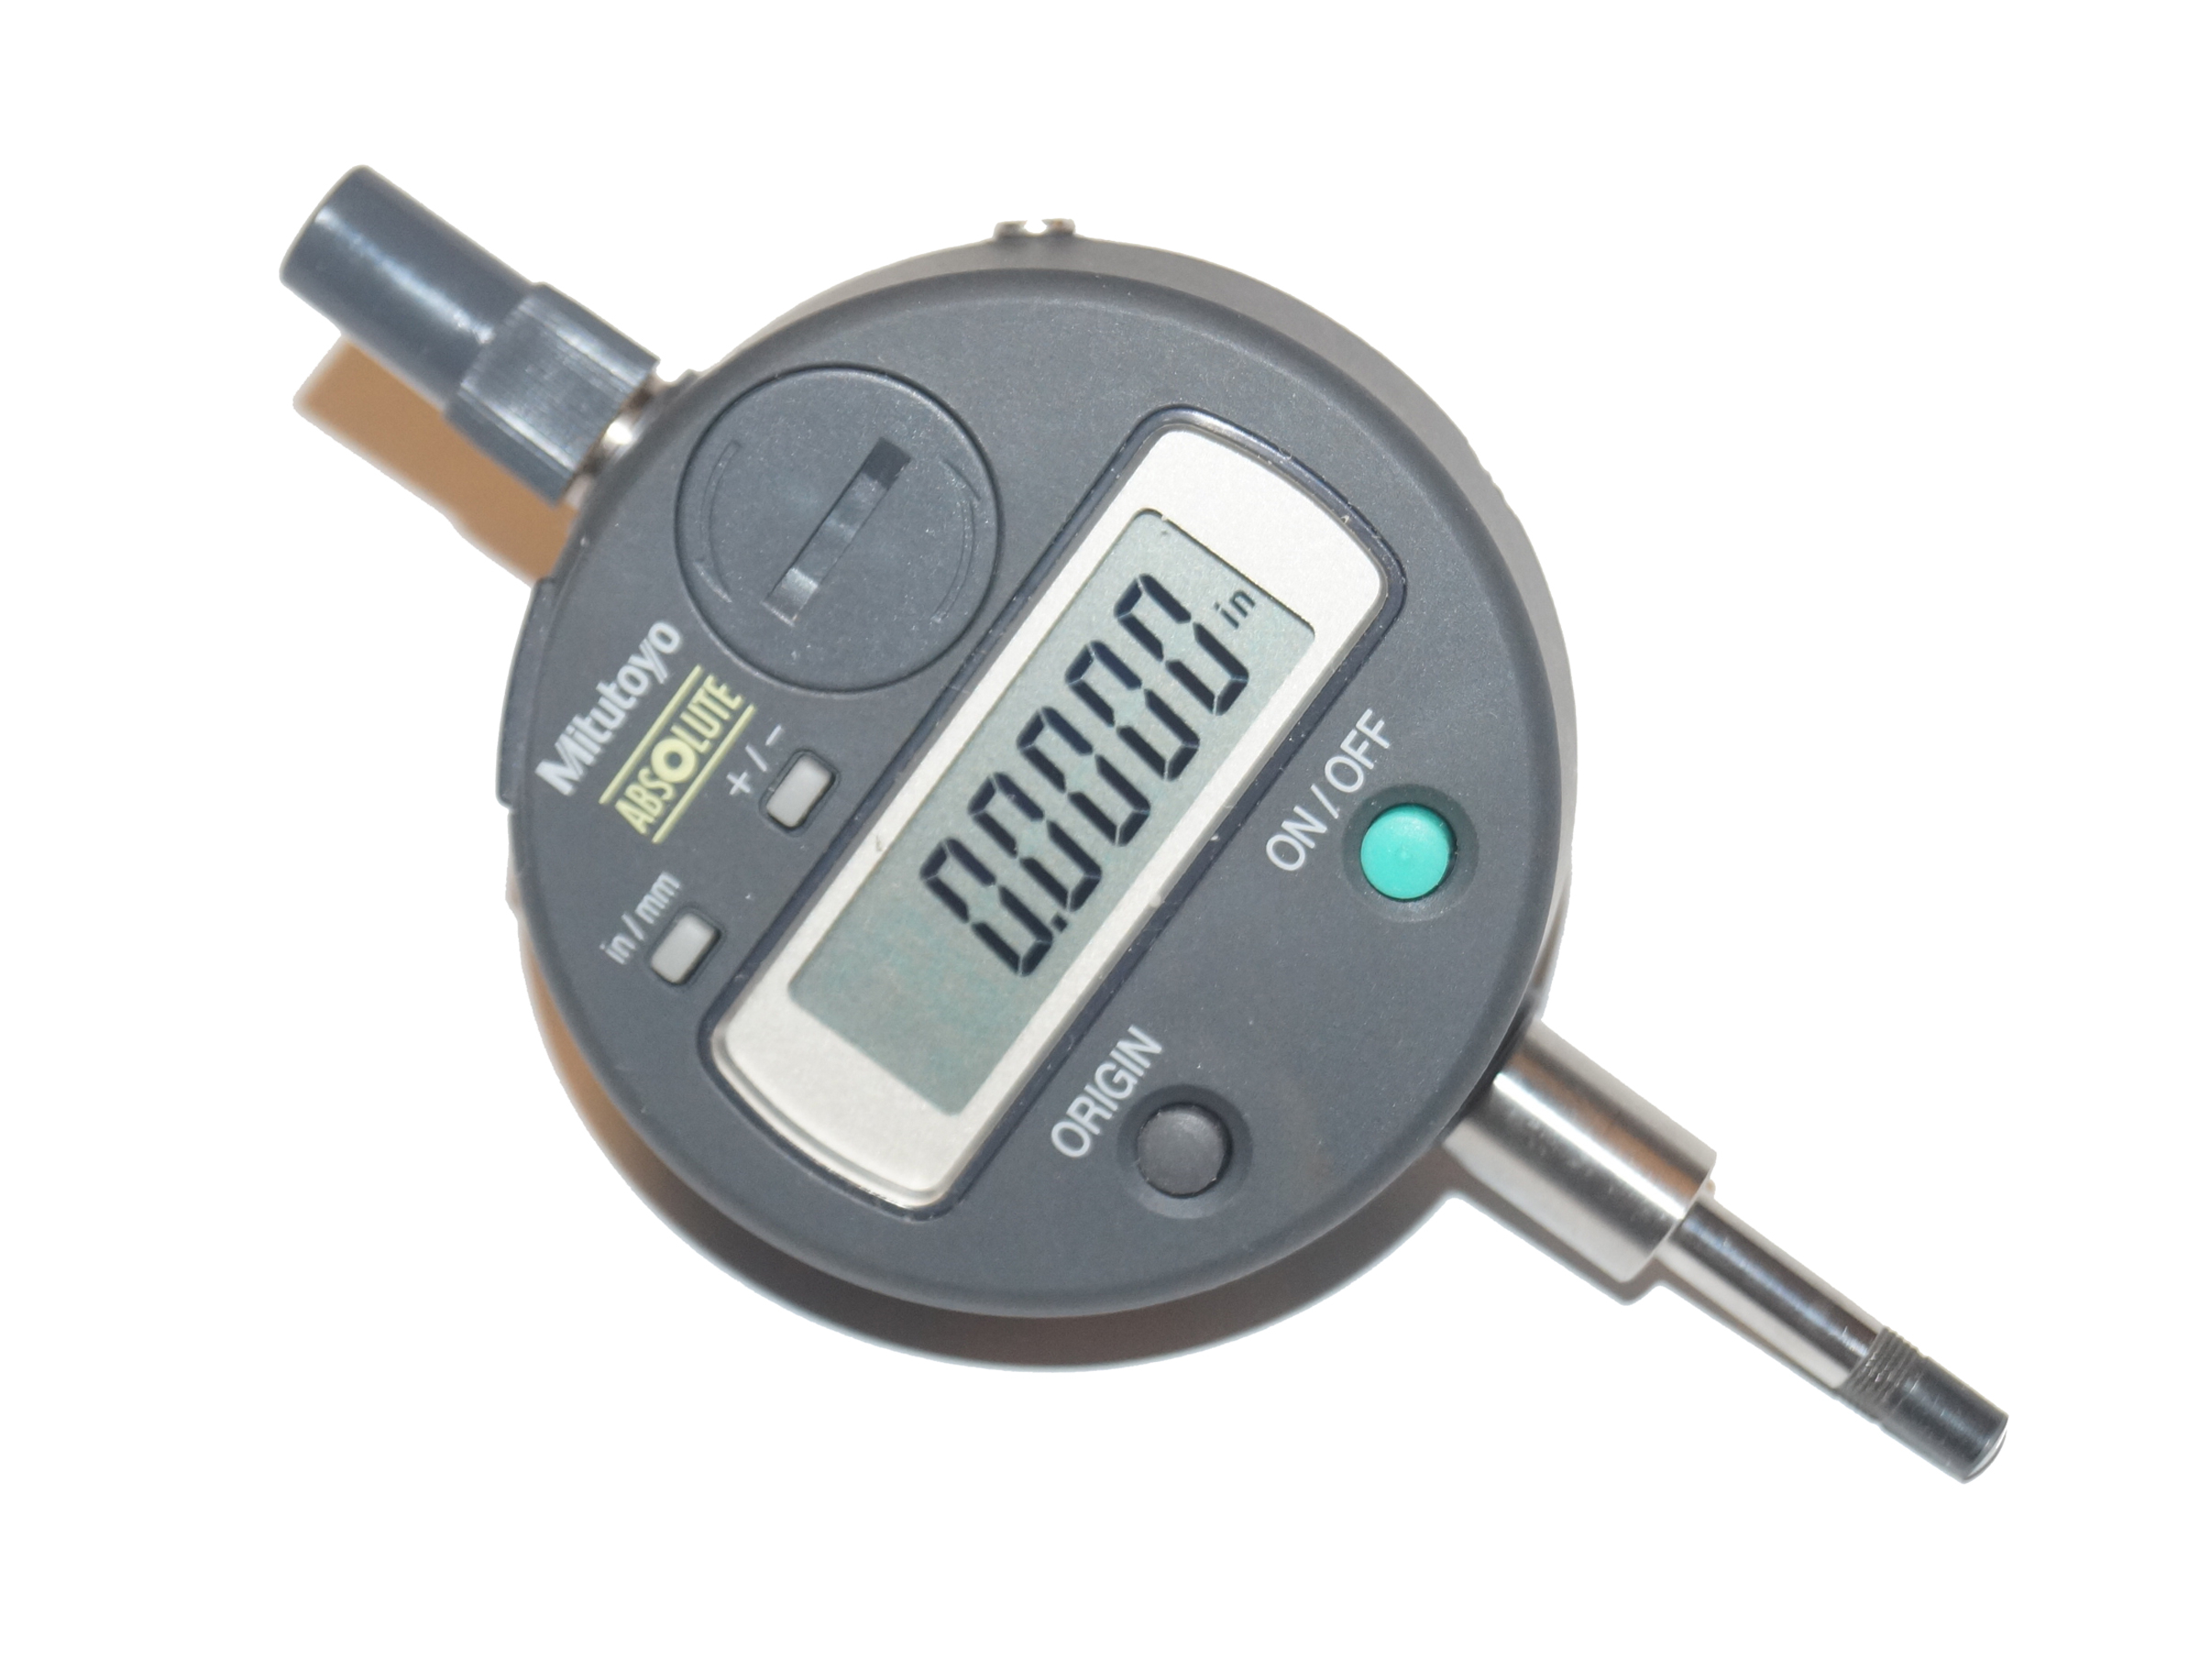 Mitutoyo Digital Indicator 543-693